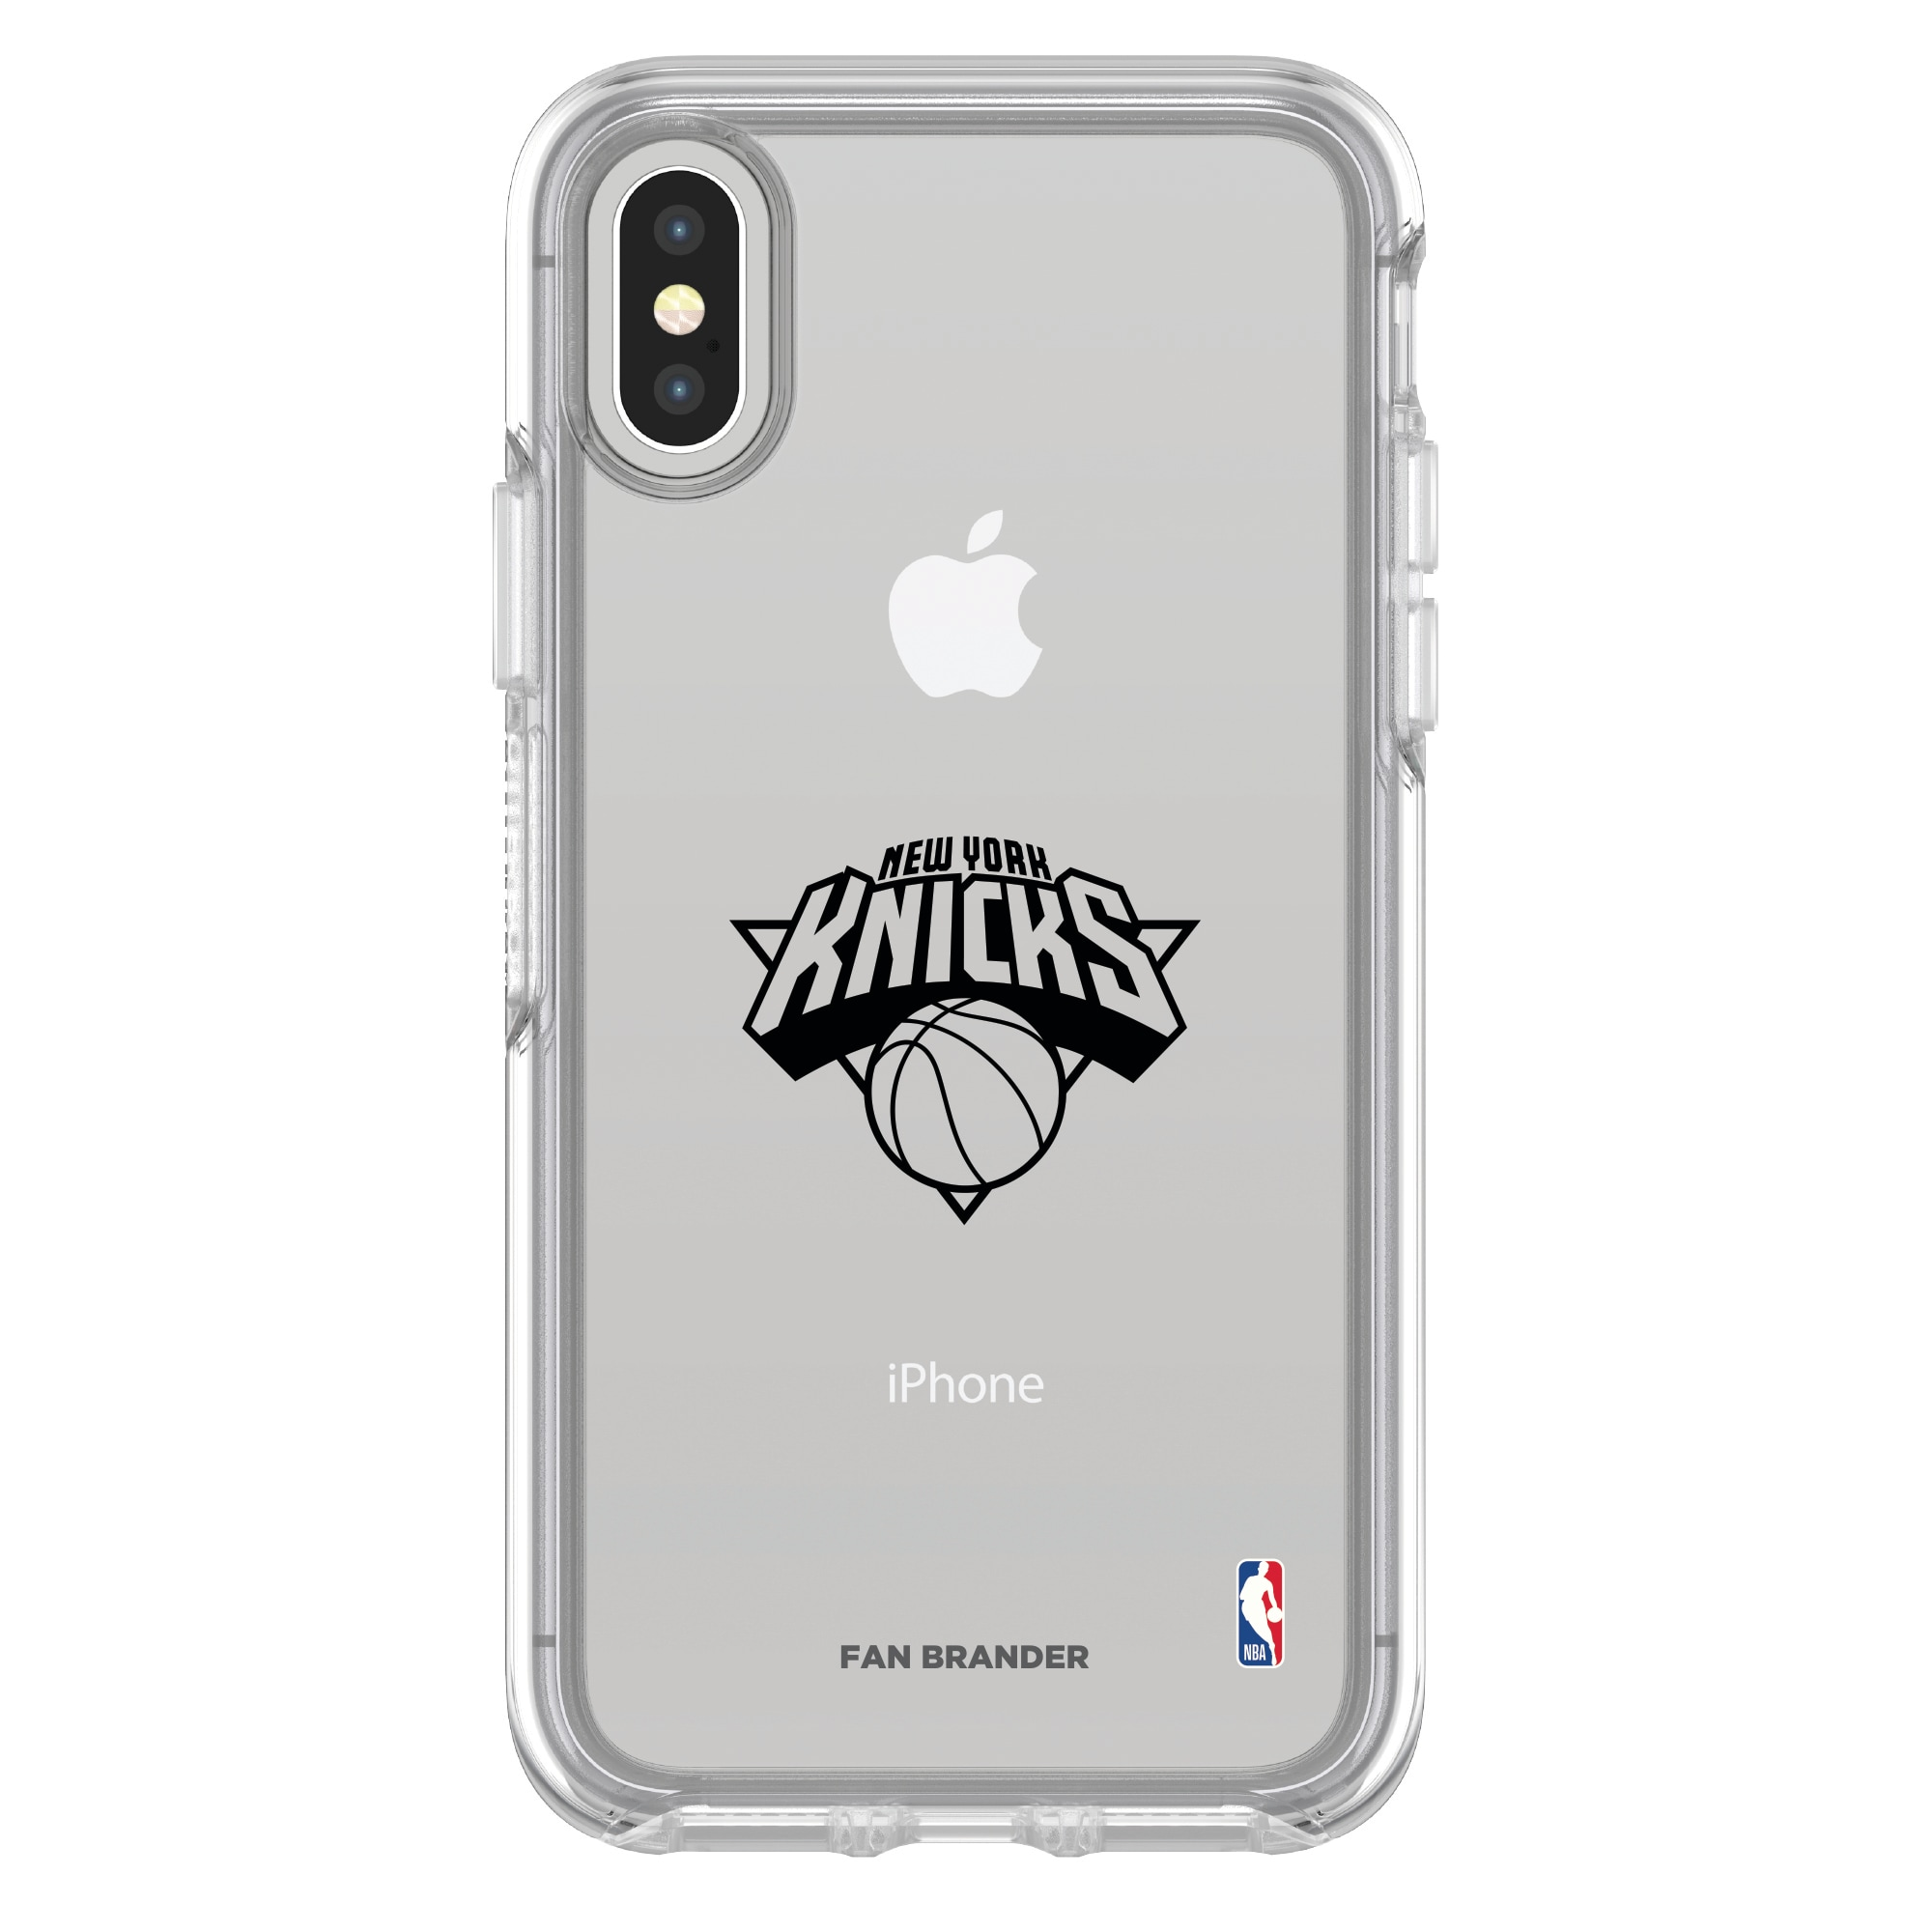 New York Knicks OtterBox Clear iPhone Symmetry Case